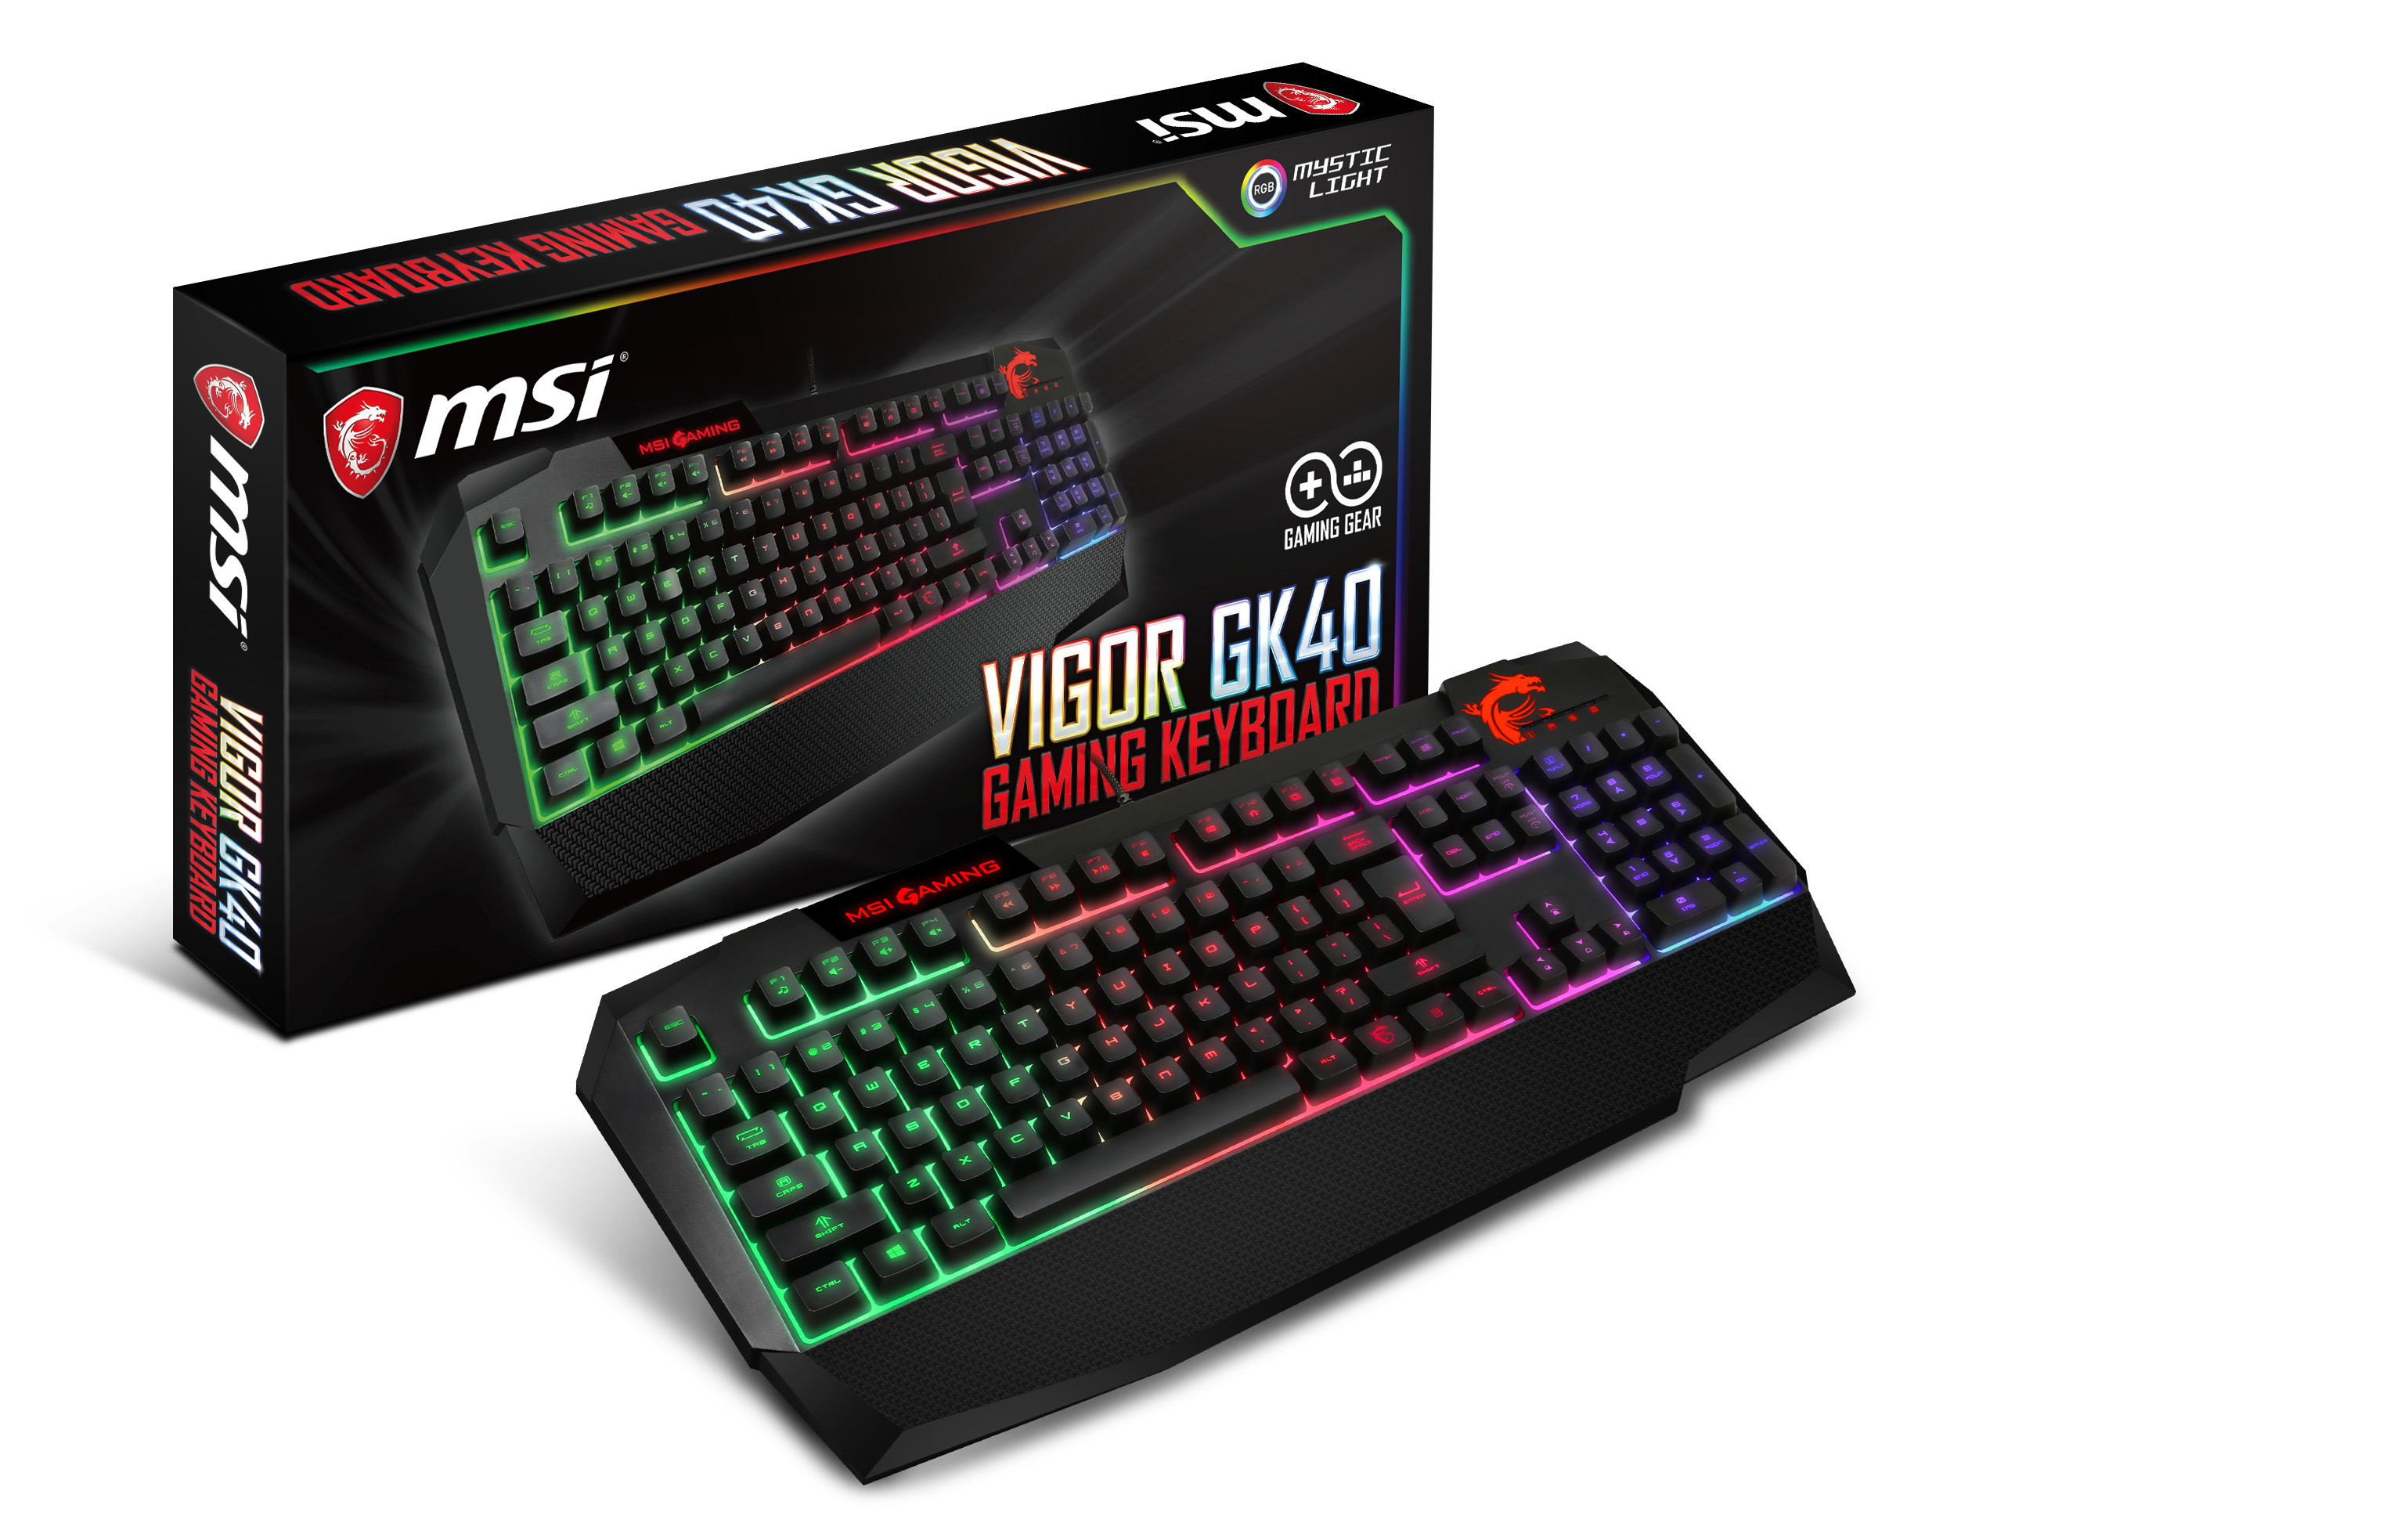 Nuove periferiche gaming da MSI